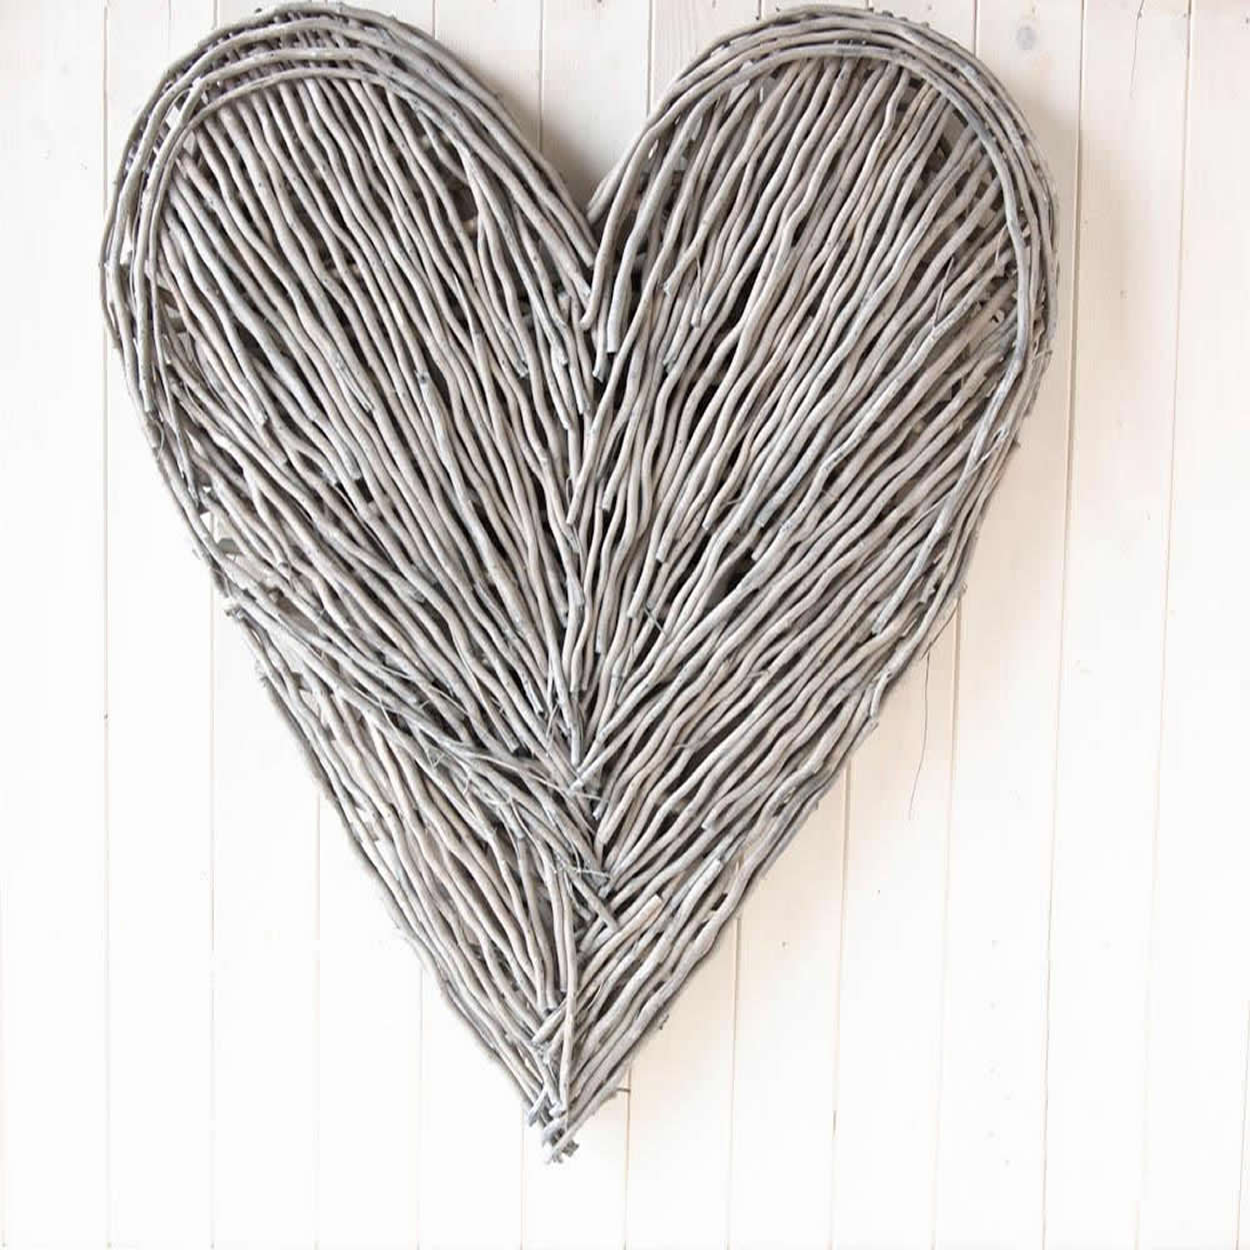 Large Heart Wall Decor : Extra large wicker wall heart walls interiors and bedrooms